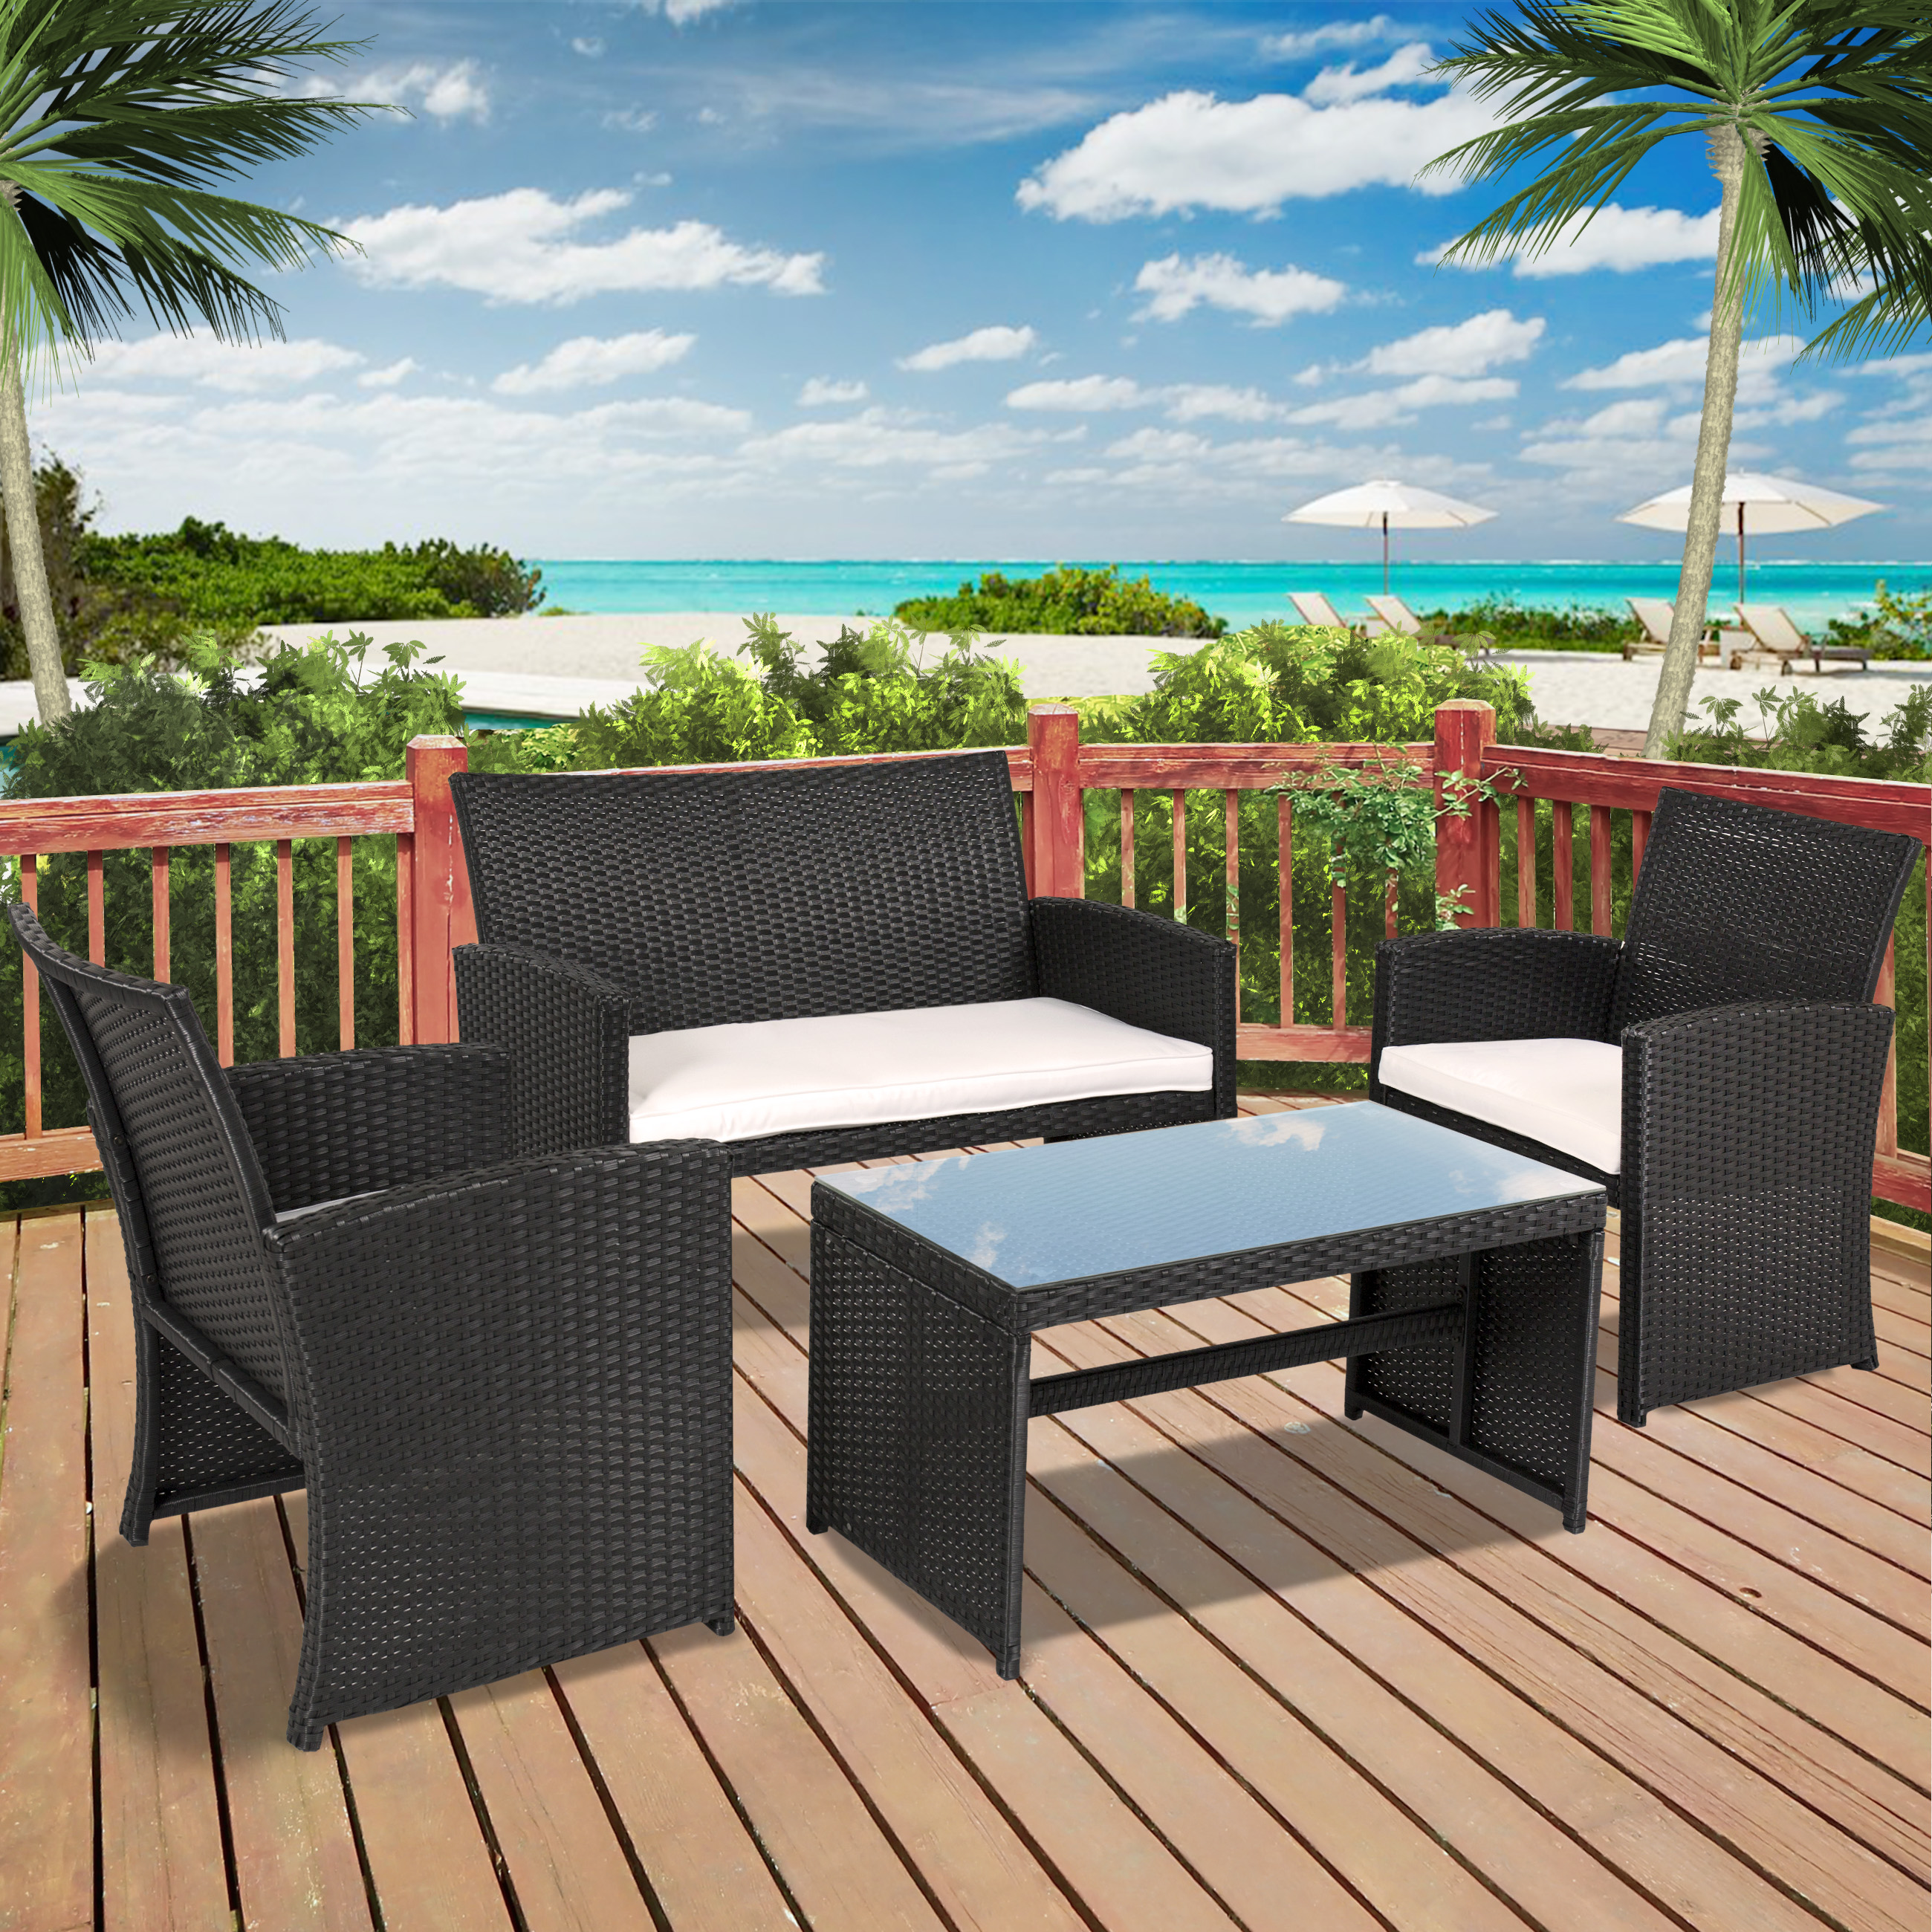 Best Choice Products Outdoor Garden Patio 4pc Cushioned Seat Black Wicker Sofa Furniture Set by